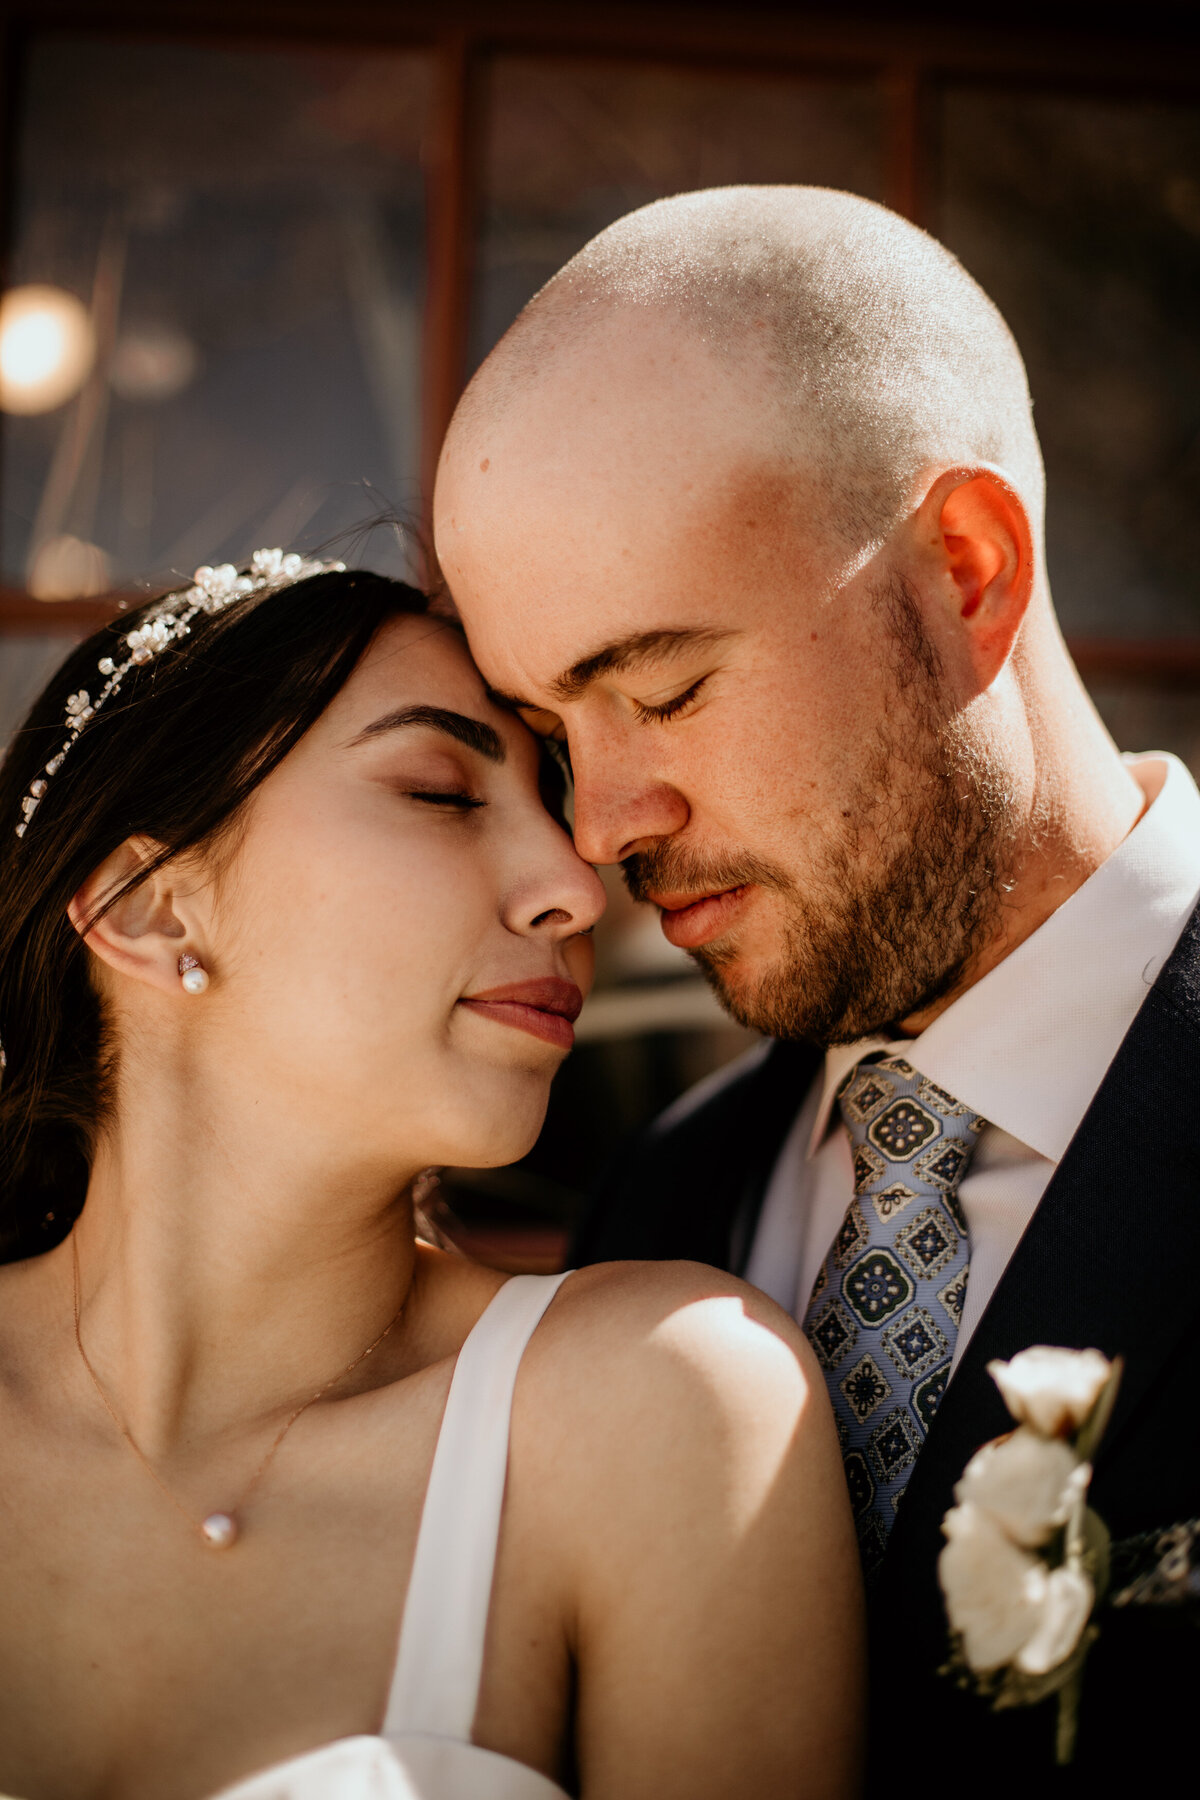 Bride and groom with heads close together